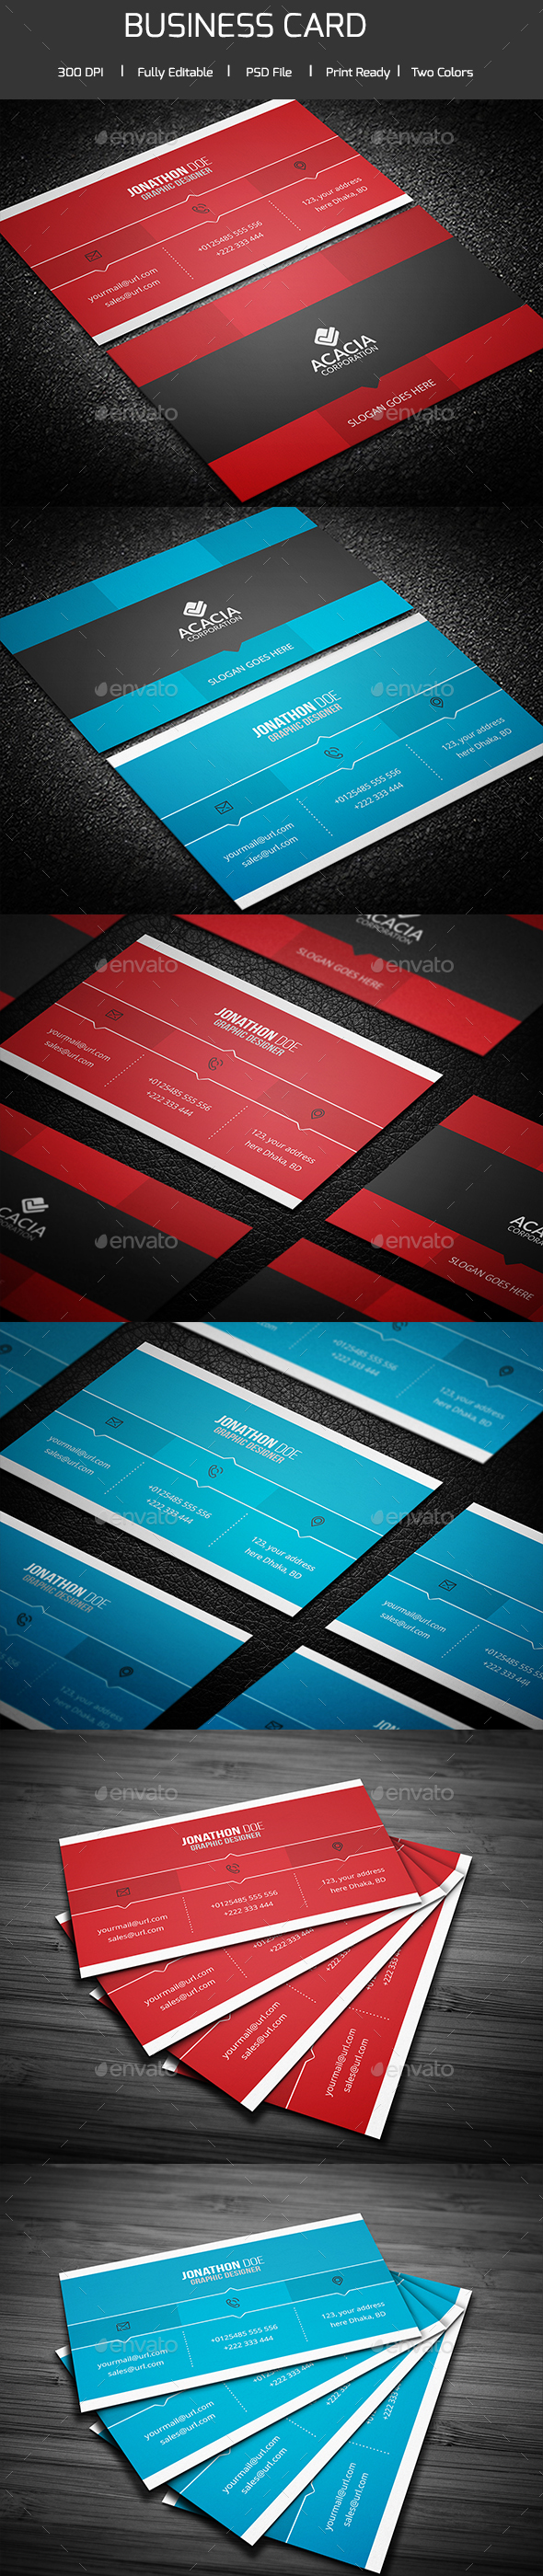 Professional Business Card 02 - Corporate Business Cards